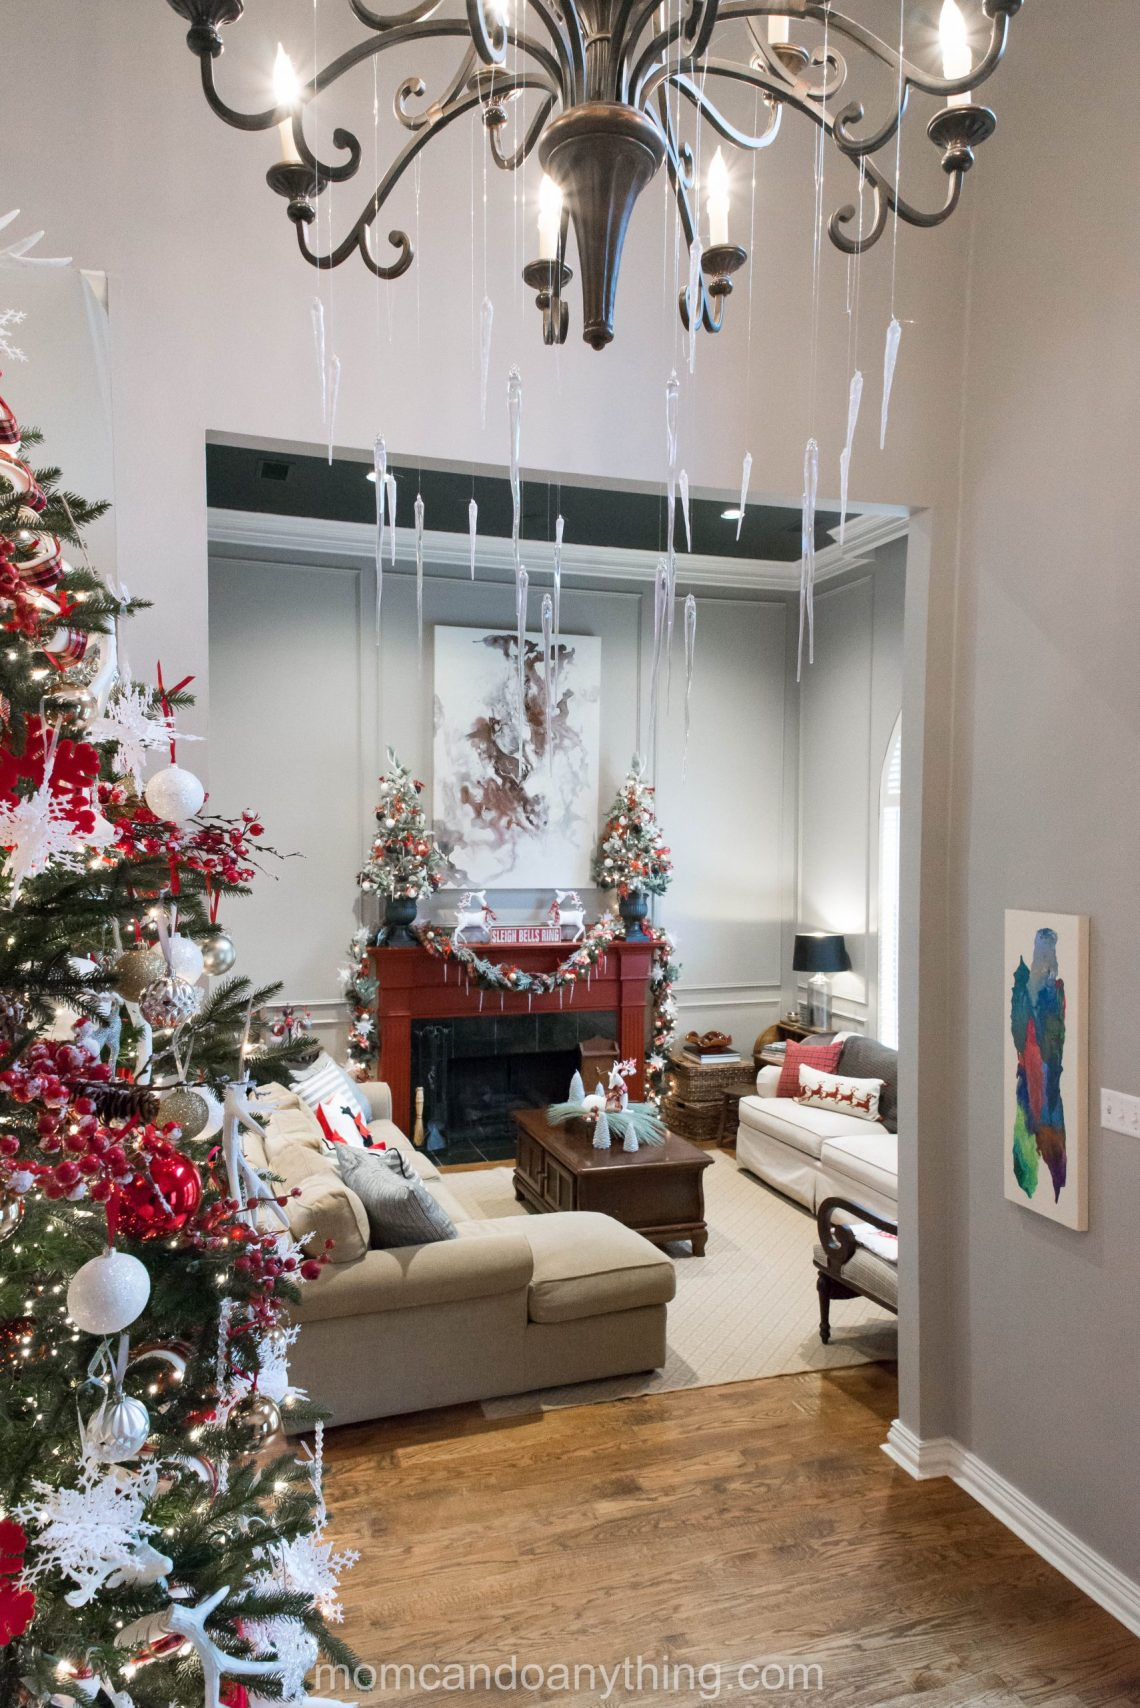 Christmas Chandelier Decoration Ideas_Mom Can Do Anything (2 of 7)